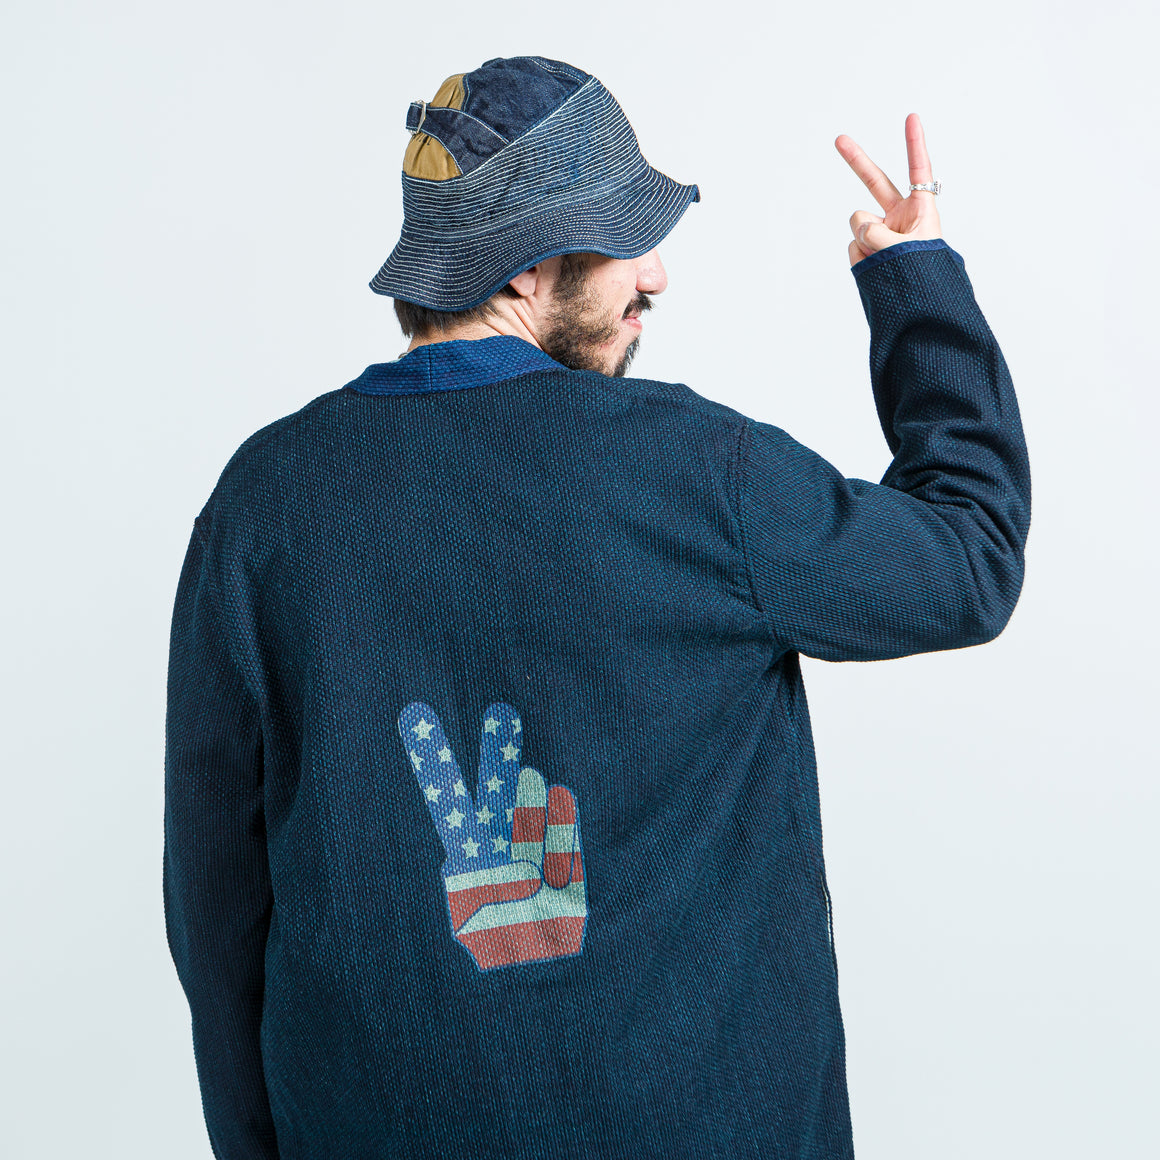 Kapital - IDG DO-GI Canvas Sha-Ka Jacket (Freedom) - Indigo - Up There